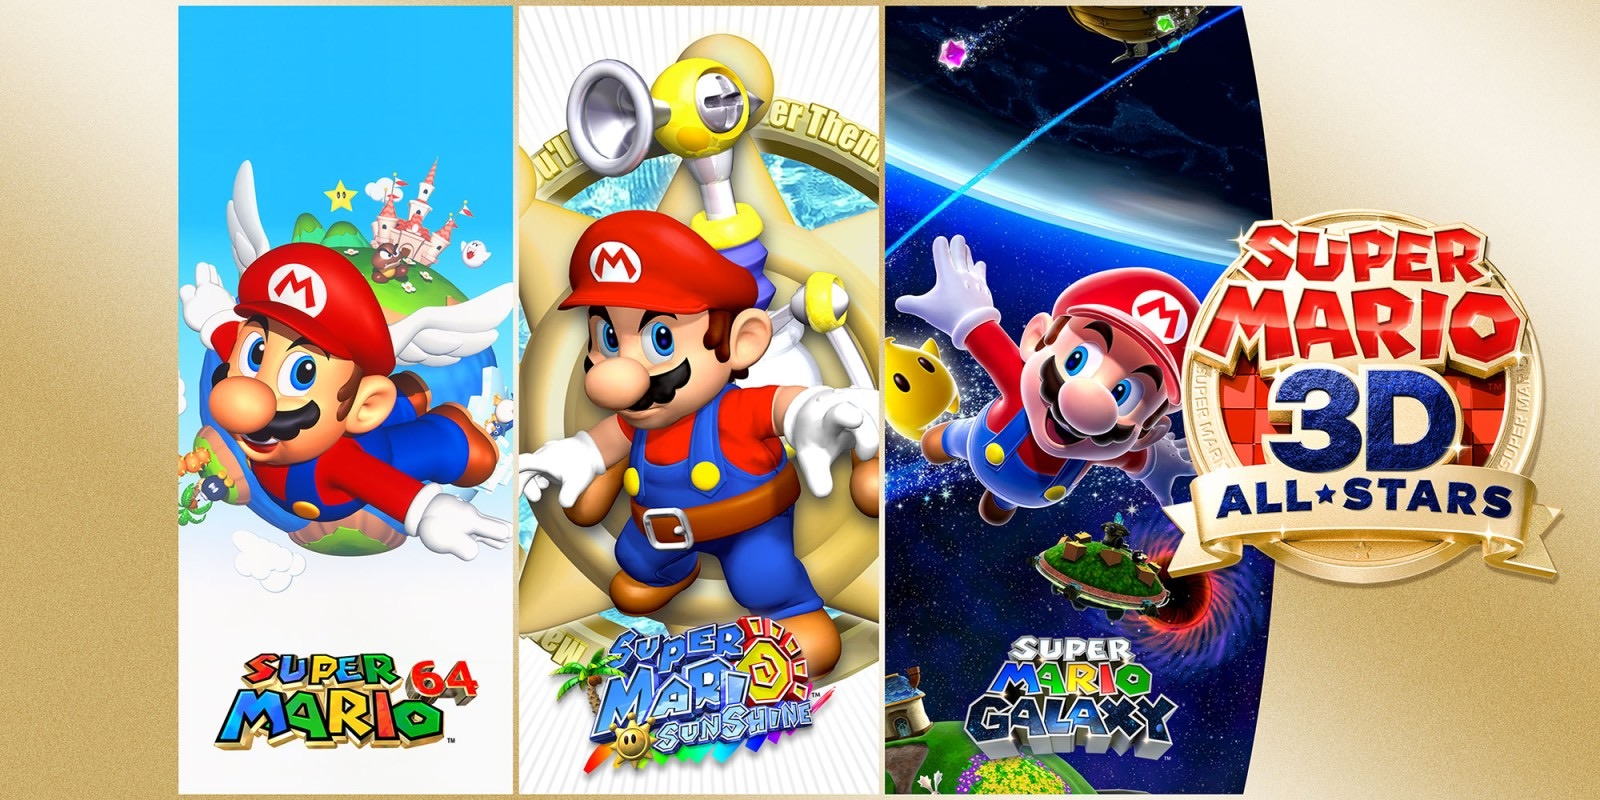 A promotional shot of Super Mario 3D All-Stars